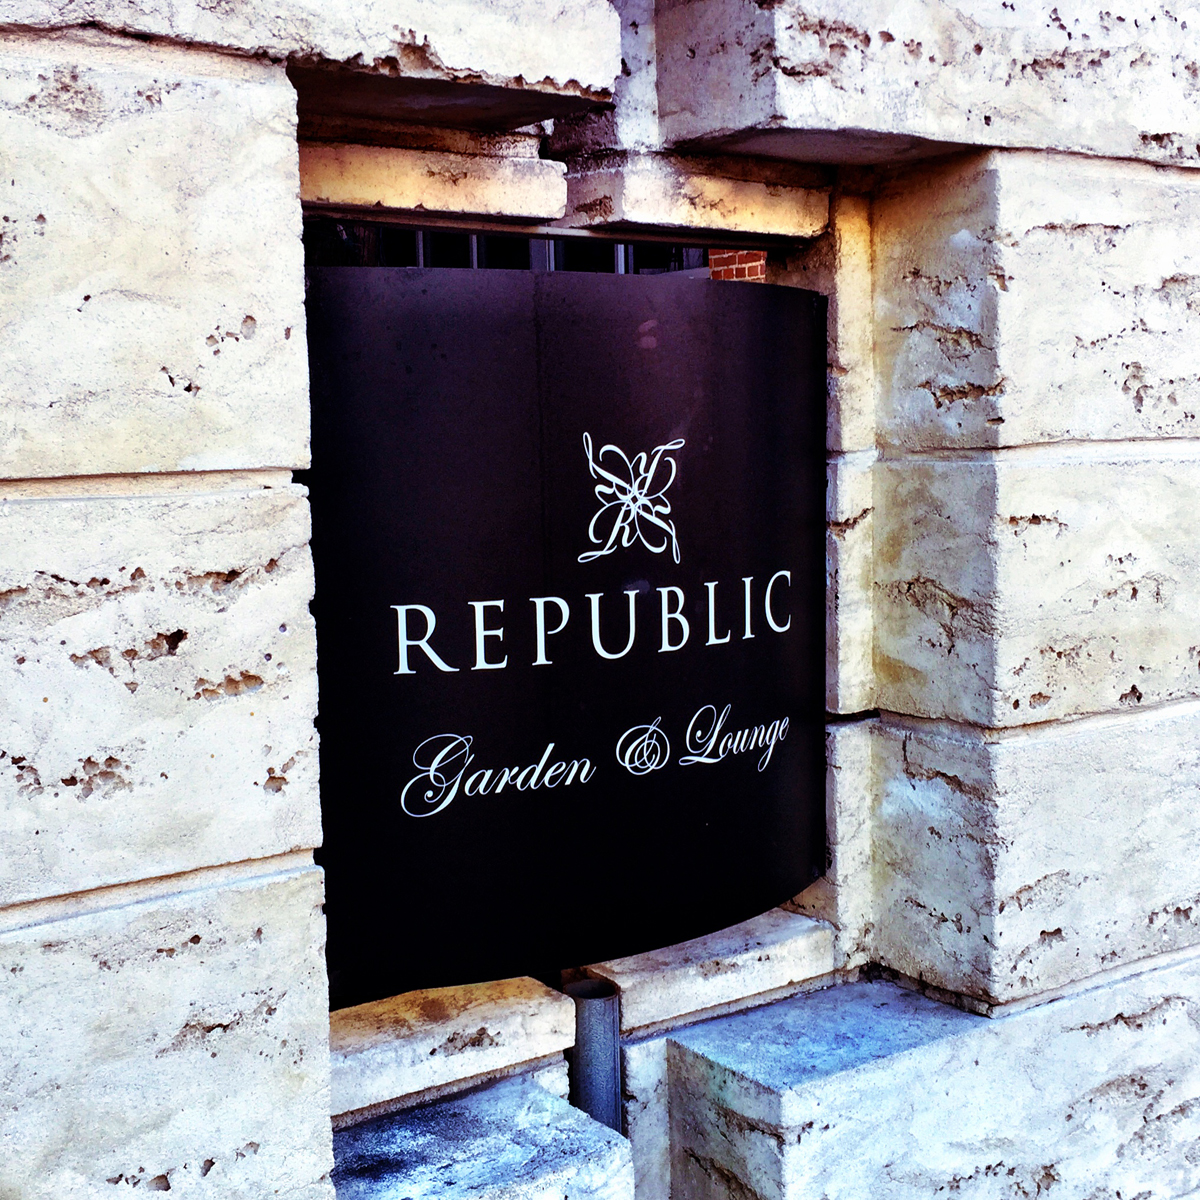 Republic is where you go when you want to get your dance on.  Cool sign.